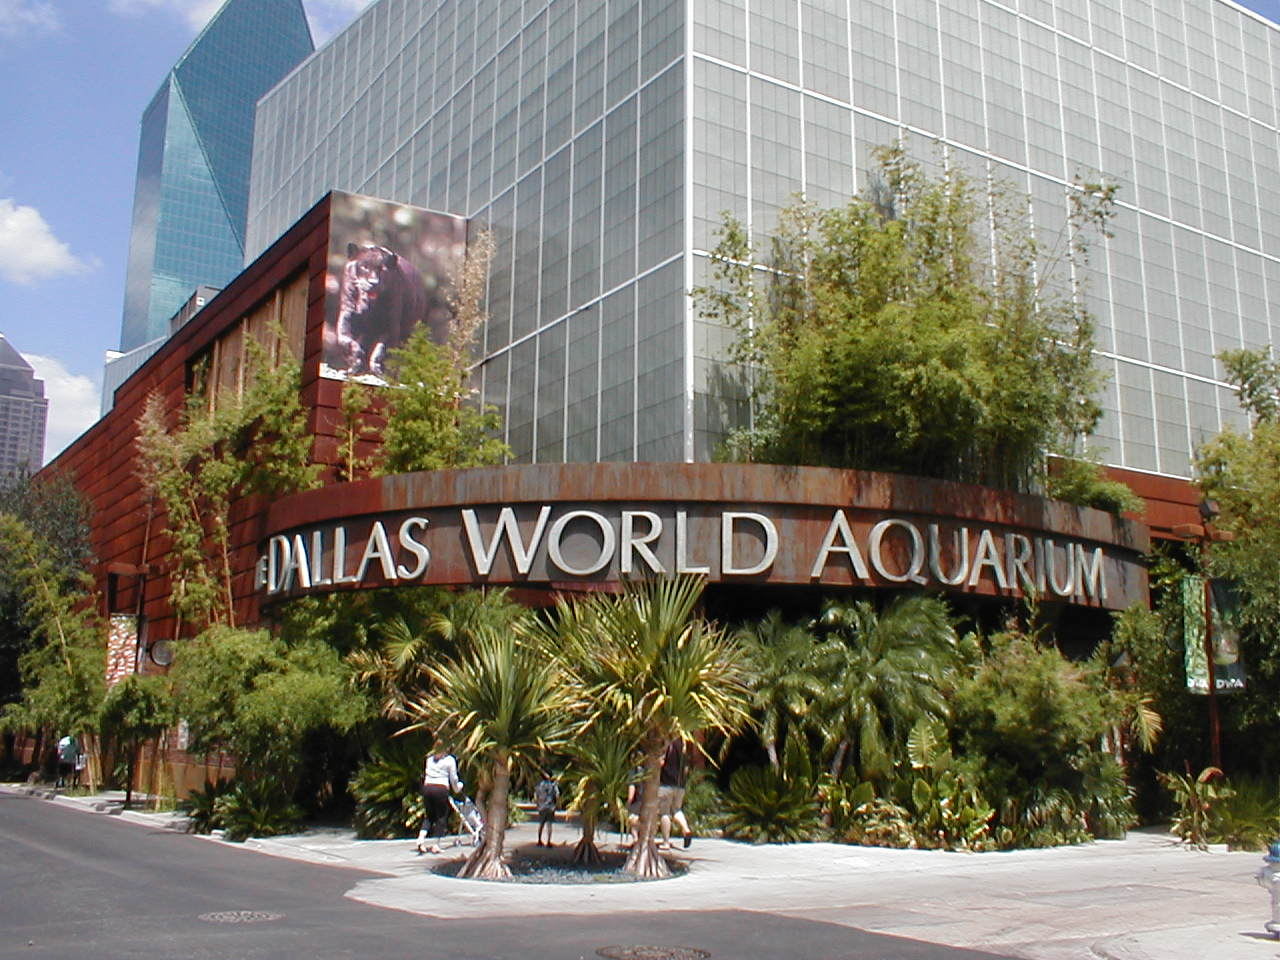 Dallas World Aquarium - Wikipedia